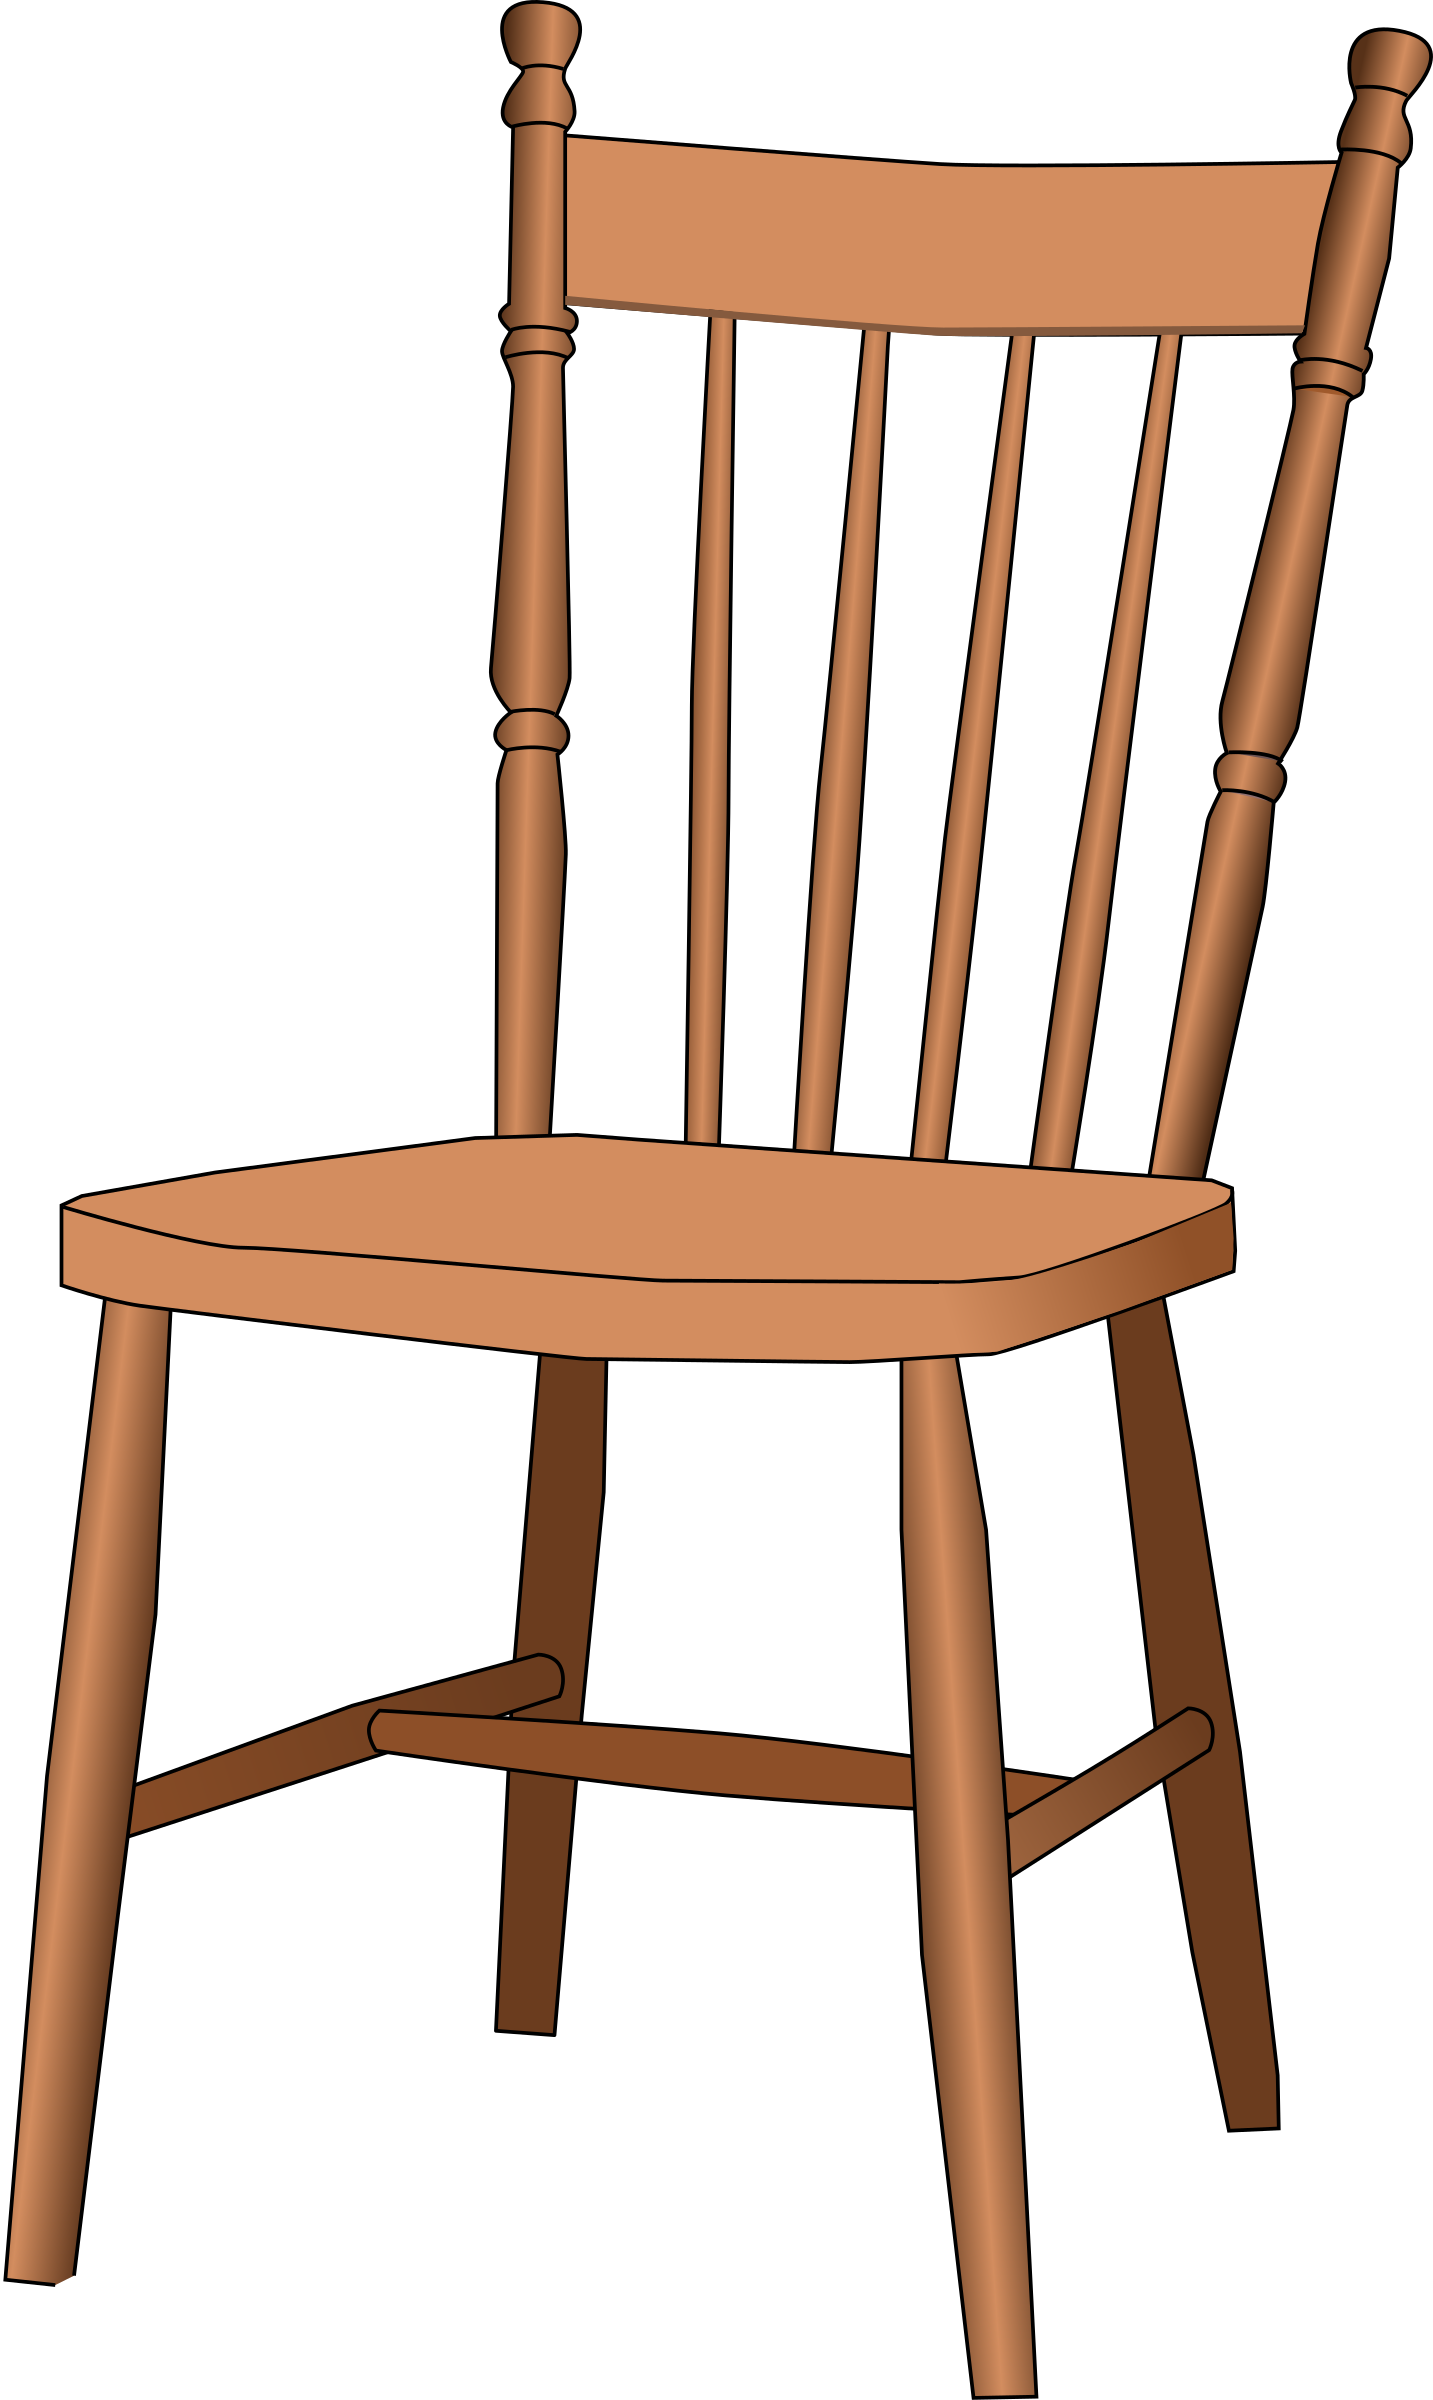 Station . Chair clipart